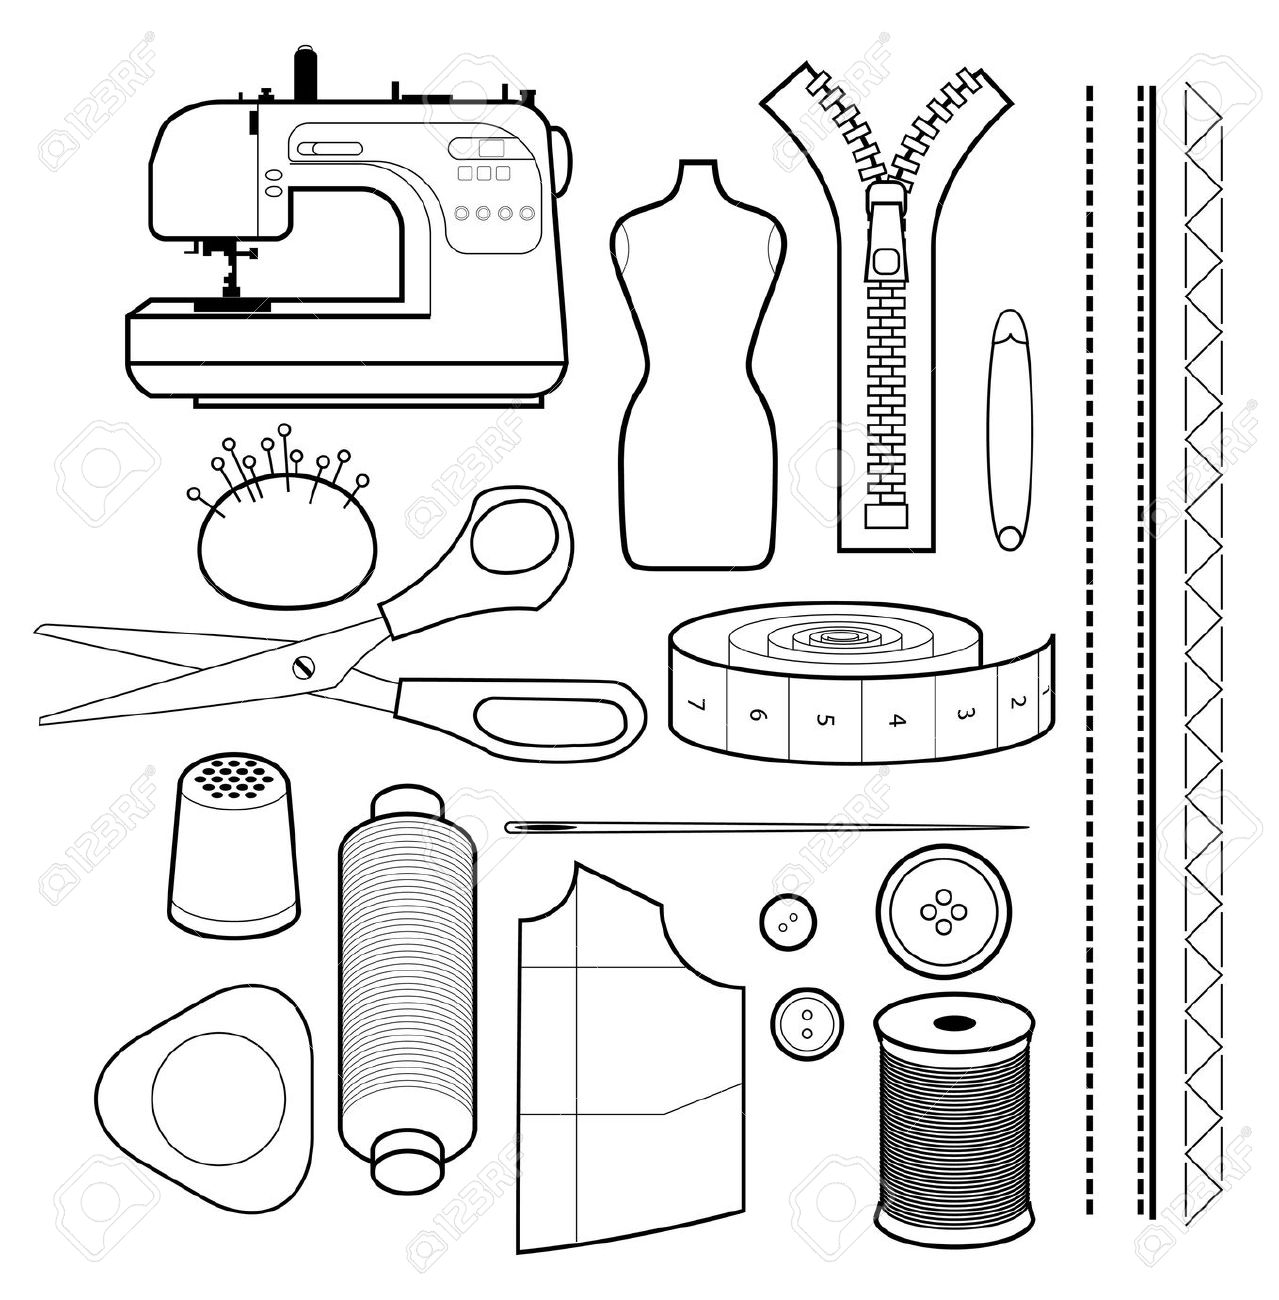 Sewing Equipment Clipart 20 Free Cliparts